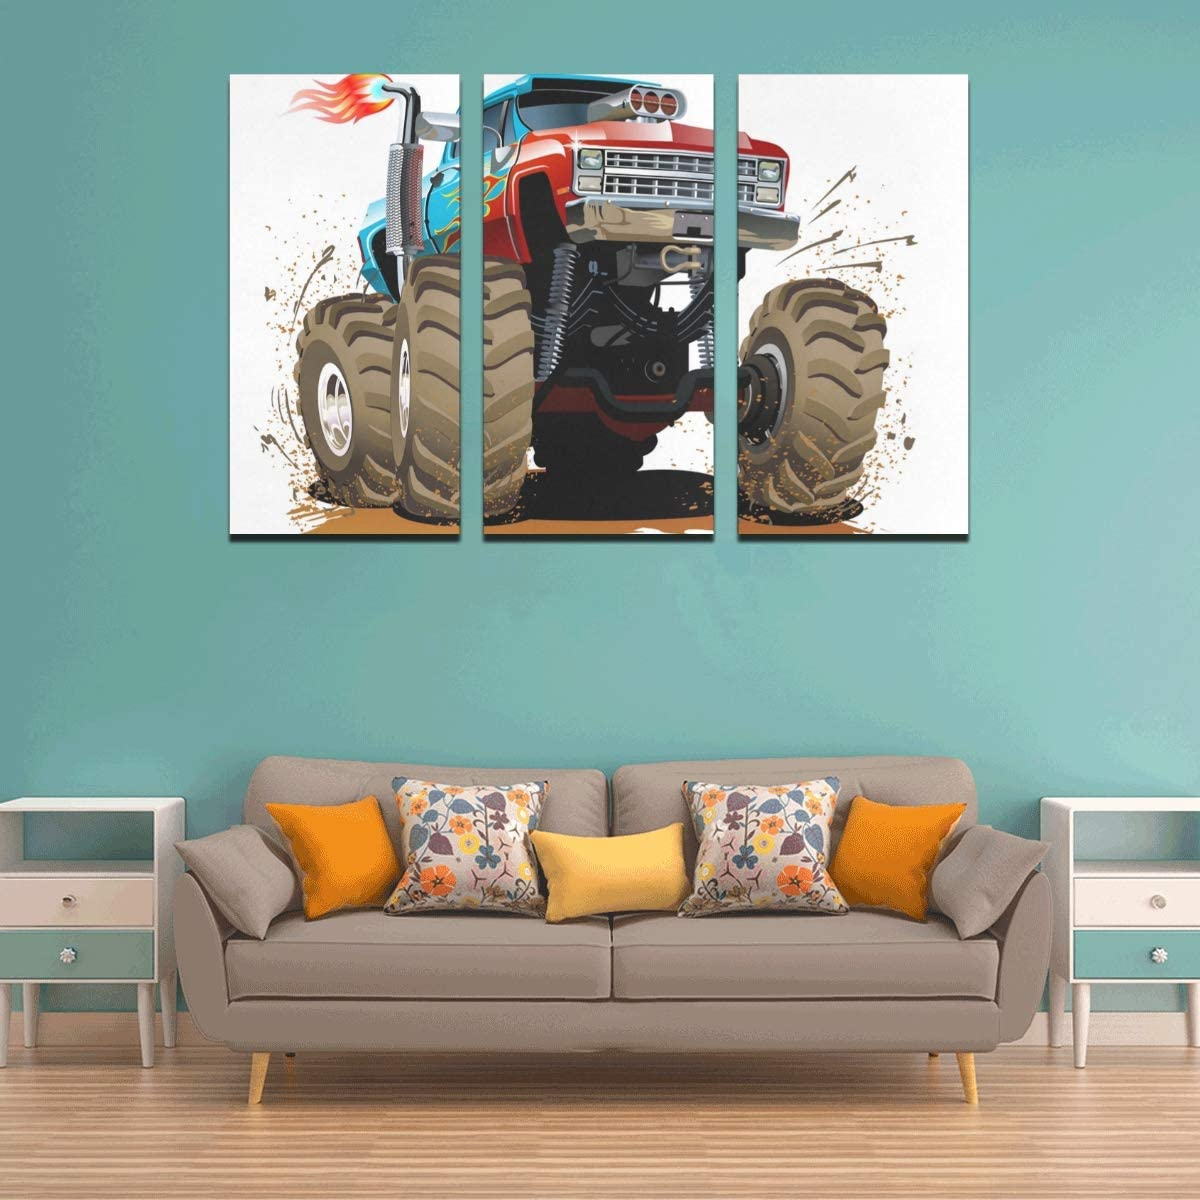 3 Panel Living Room Canvas Wall Art Cute Cartoon Monster Truck Art Wall Decor For Boys Wall Decor For Kids Wall Art Modern For Home Living Room Bedroom Bathroom Wall Decor Posters